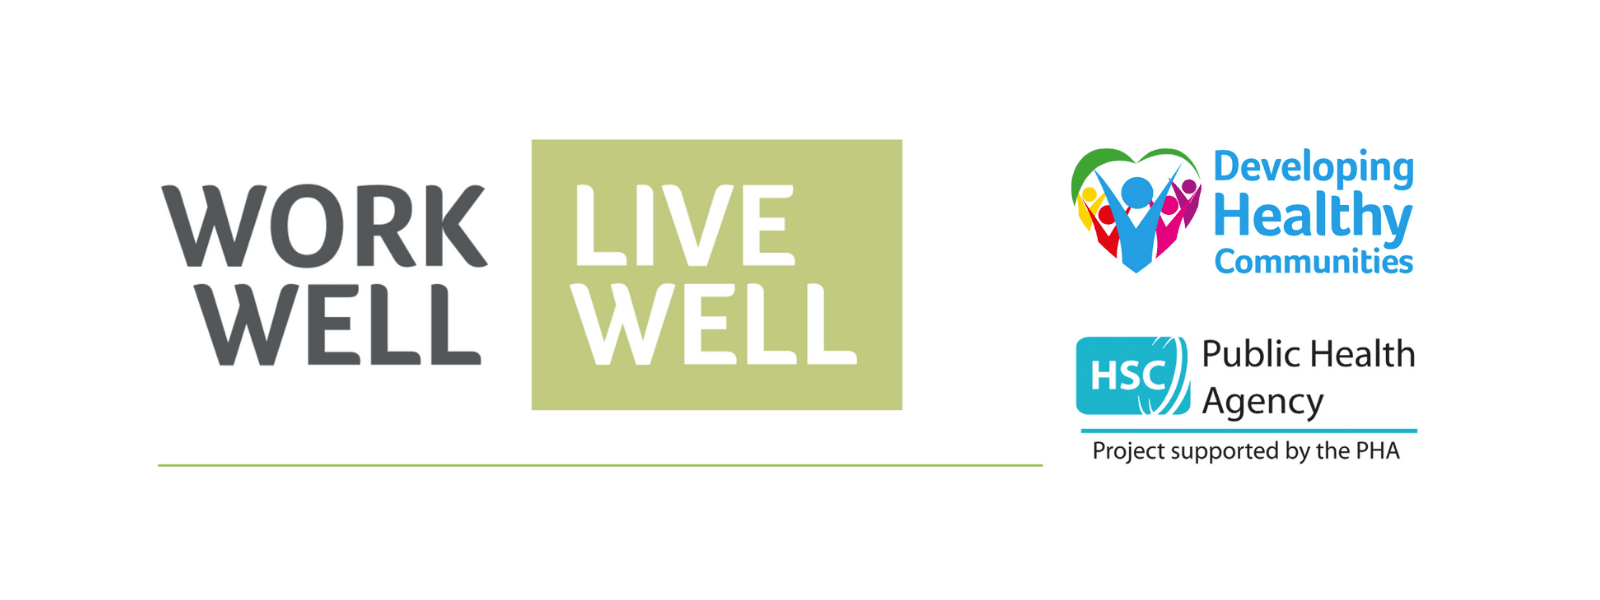 Work Well Live Well logo alongside the Developing Healthy Communities and Public Health Agency logos